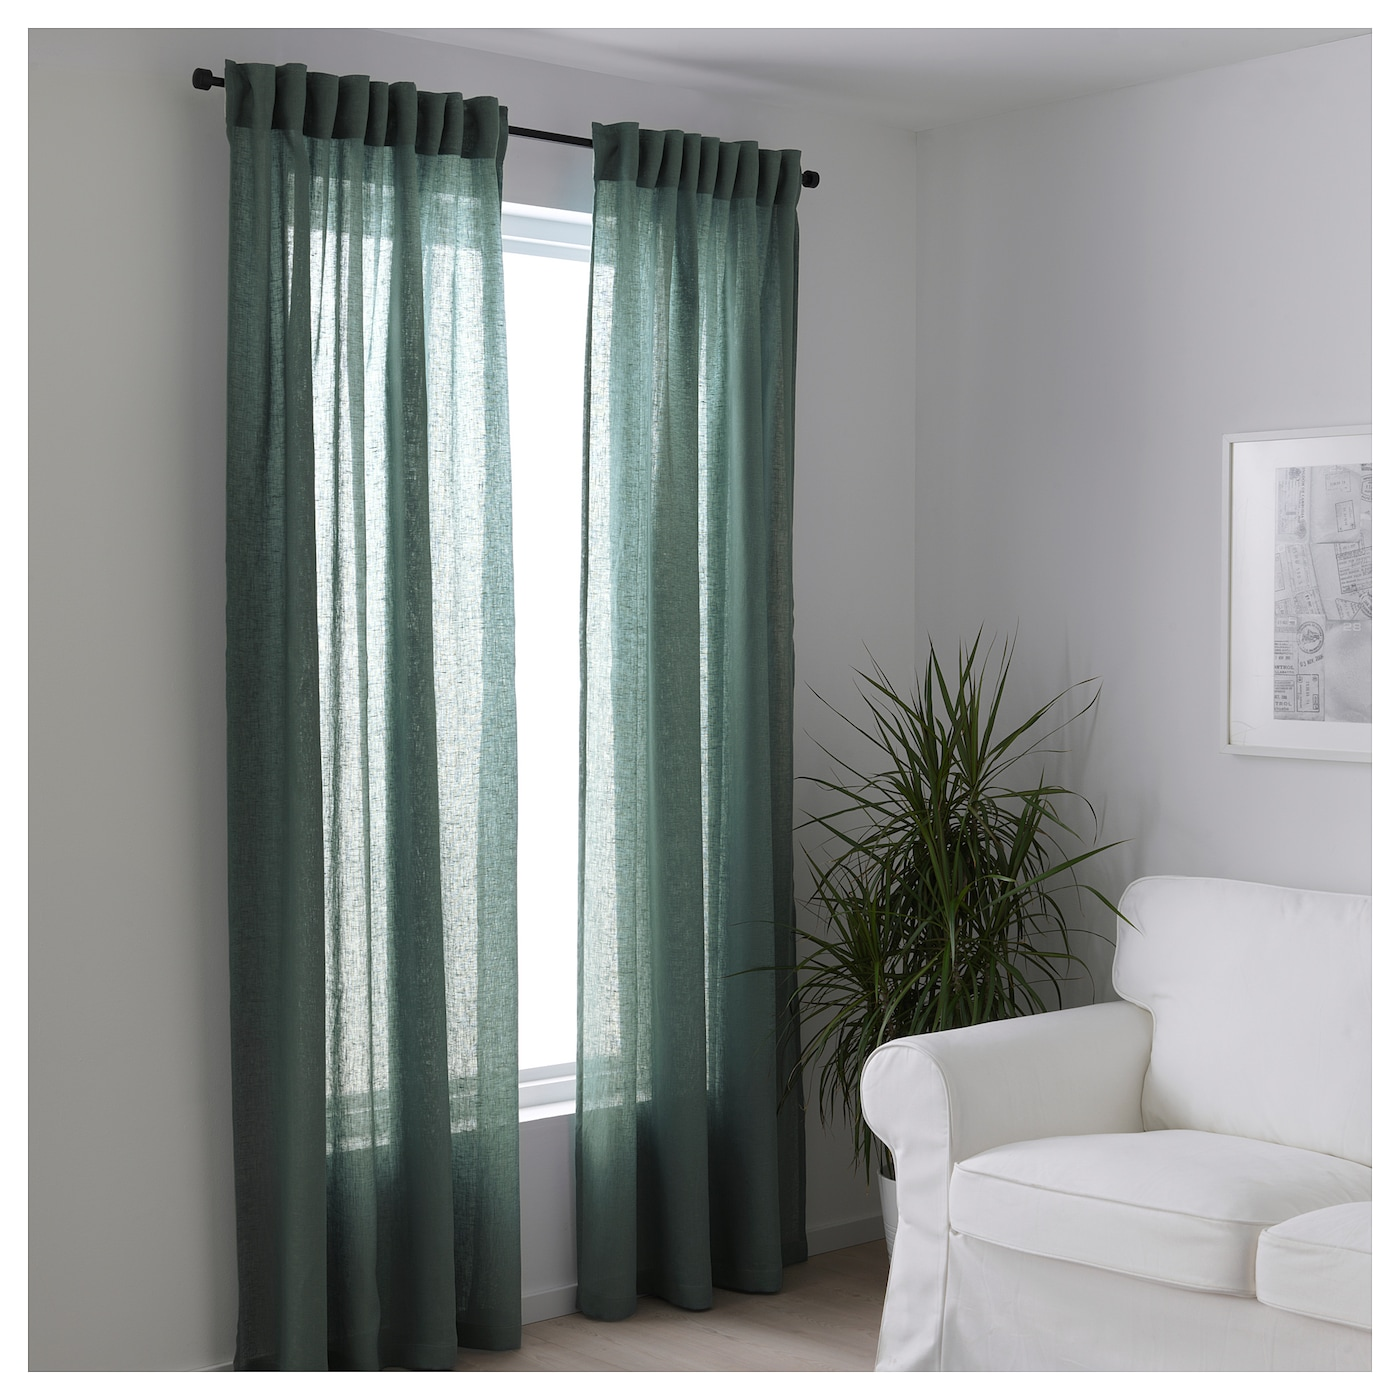 Lejongap curtains 1 pair green 145x250 cm ikea for Track curtains ikea